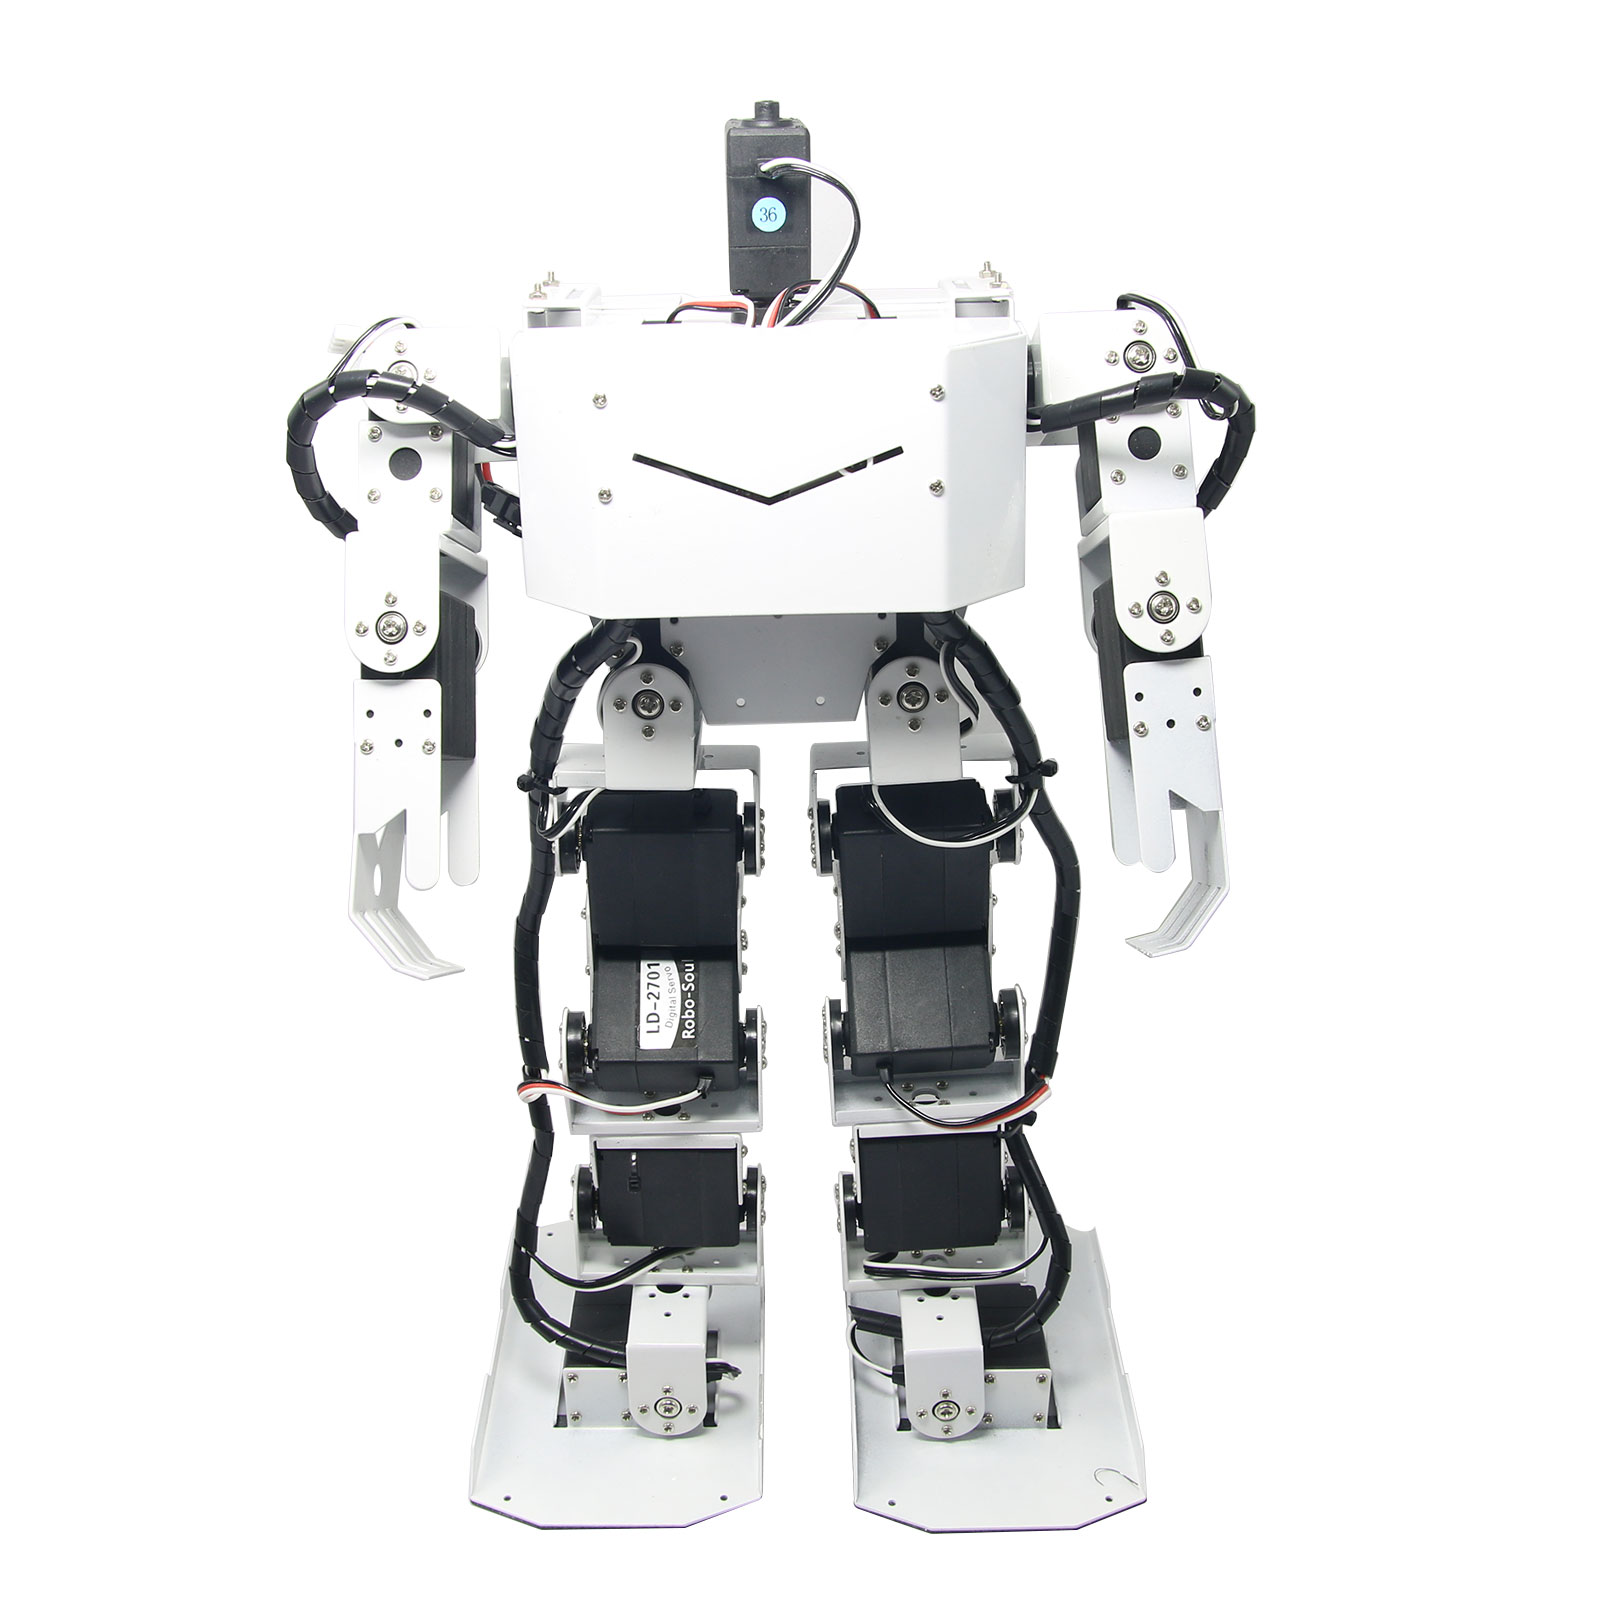 Assembled Aluminum 17DOF Robo-Soul H3.0 Biped Robotics Humanoid Robot with LD-1501 Servos + 24CH Controller new 17 degrees of freedom humanoid biped robot teaching and research biped robot platform model no electronic control system